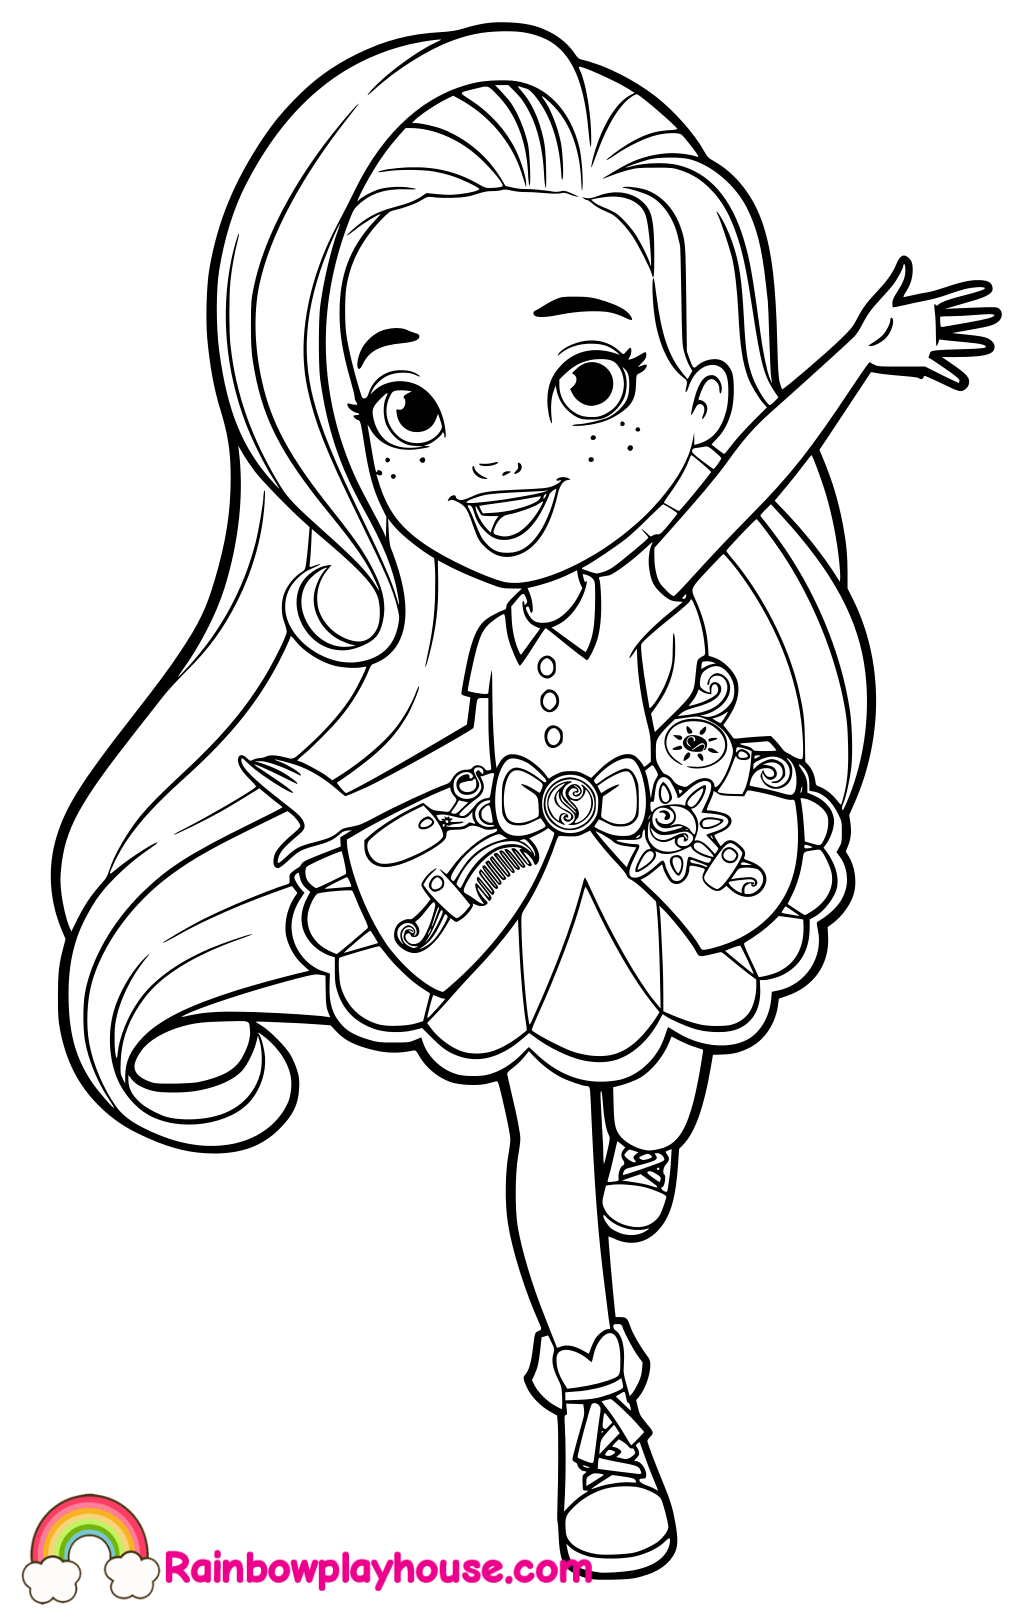 Sunny Day Hairstylist Coloring Page With Images